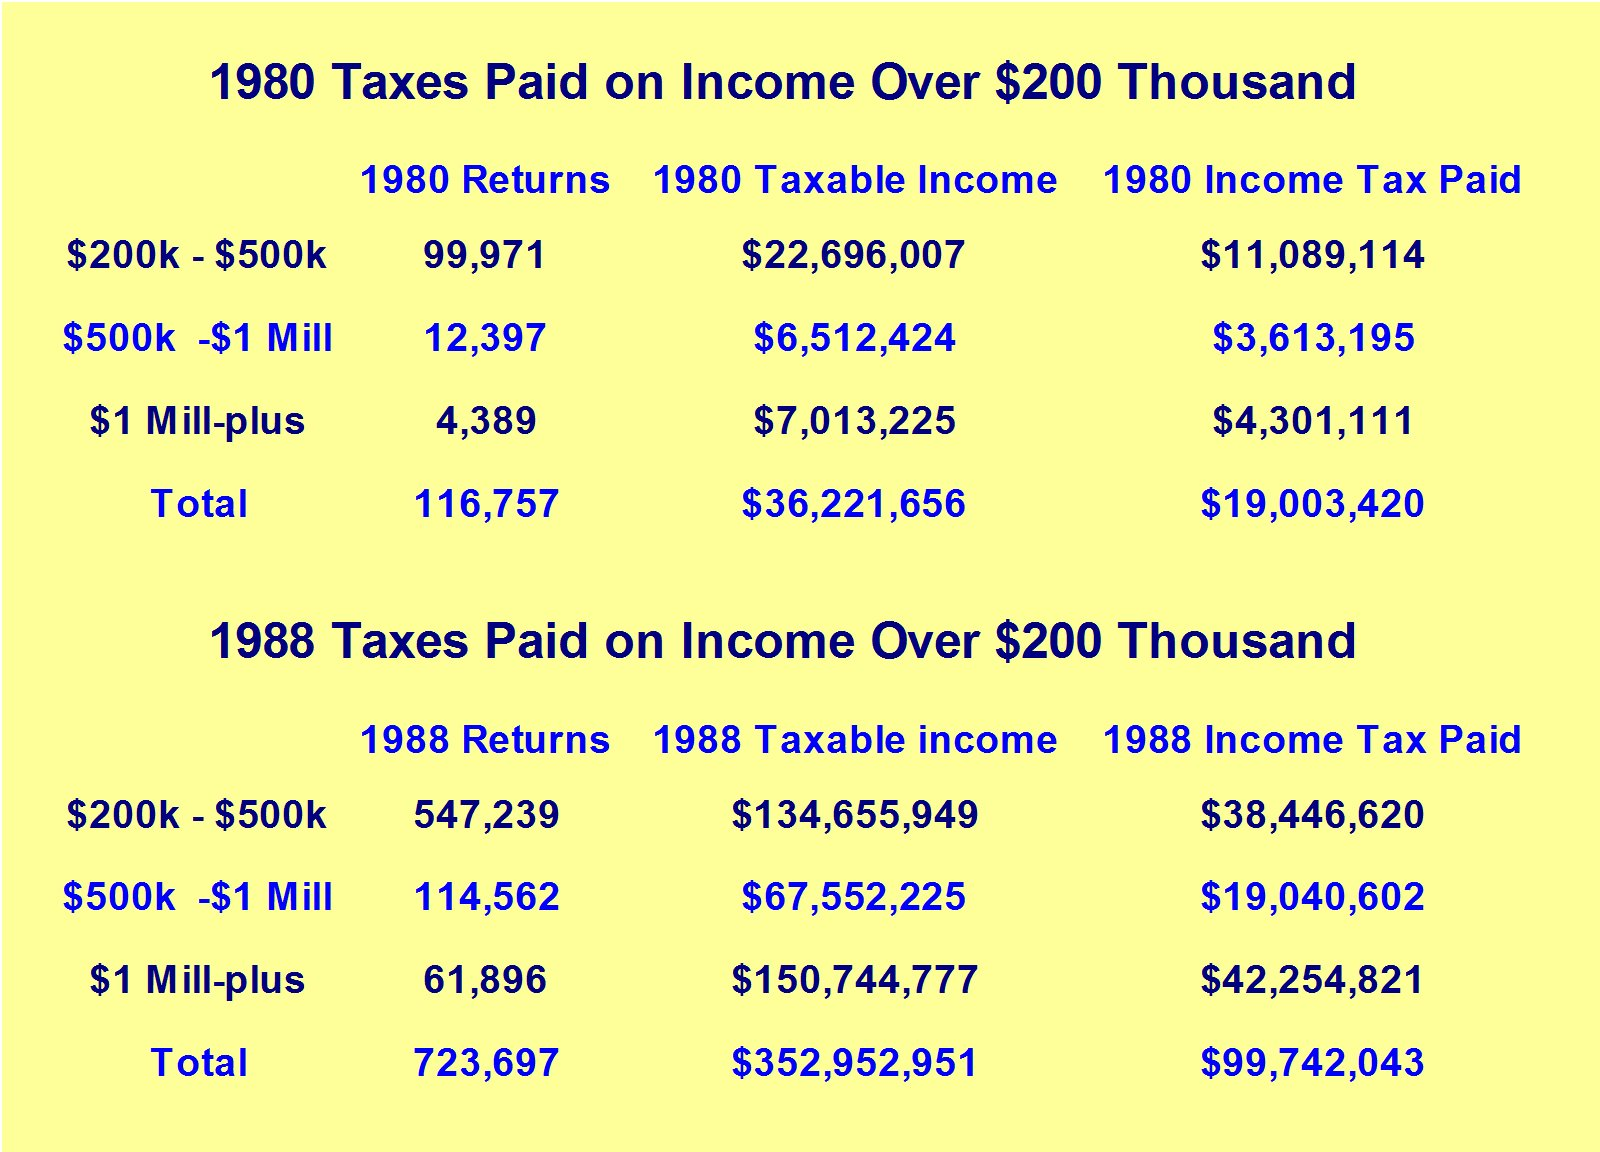 Taxes Paid on Income Over $200 thousand, 1980 - 1988. (Source: Internal Revenue Service/IRS)